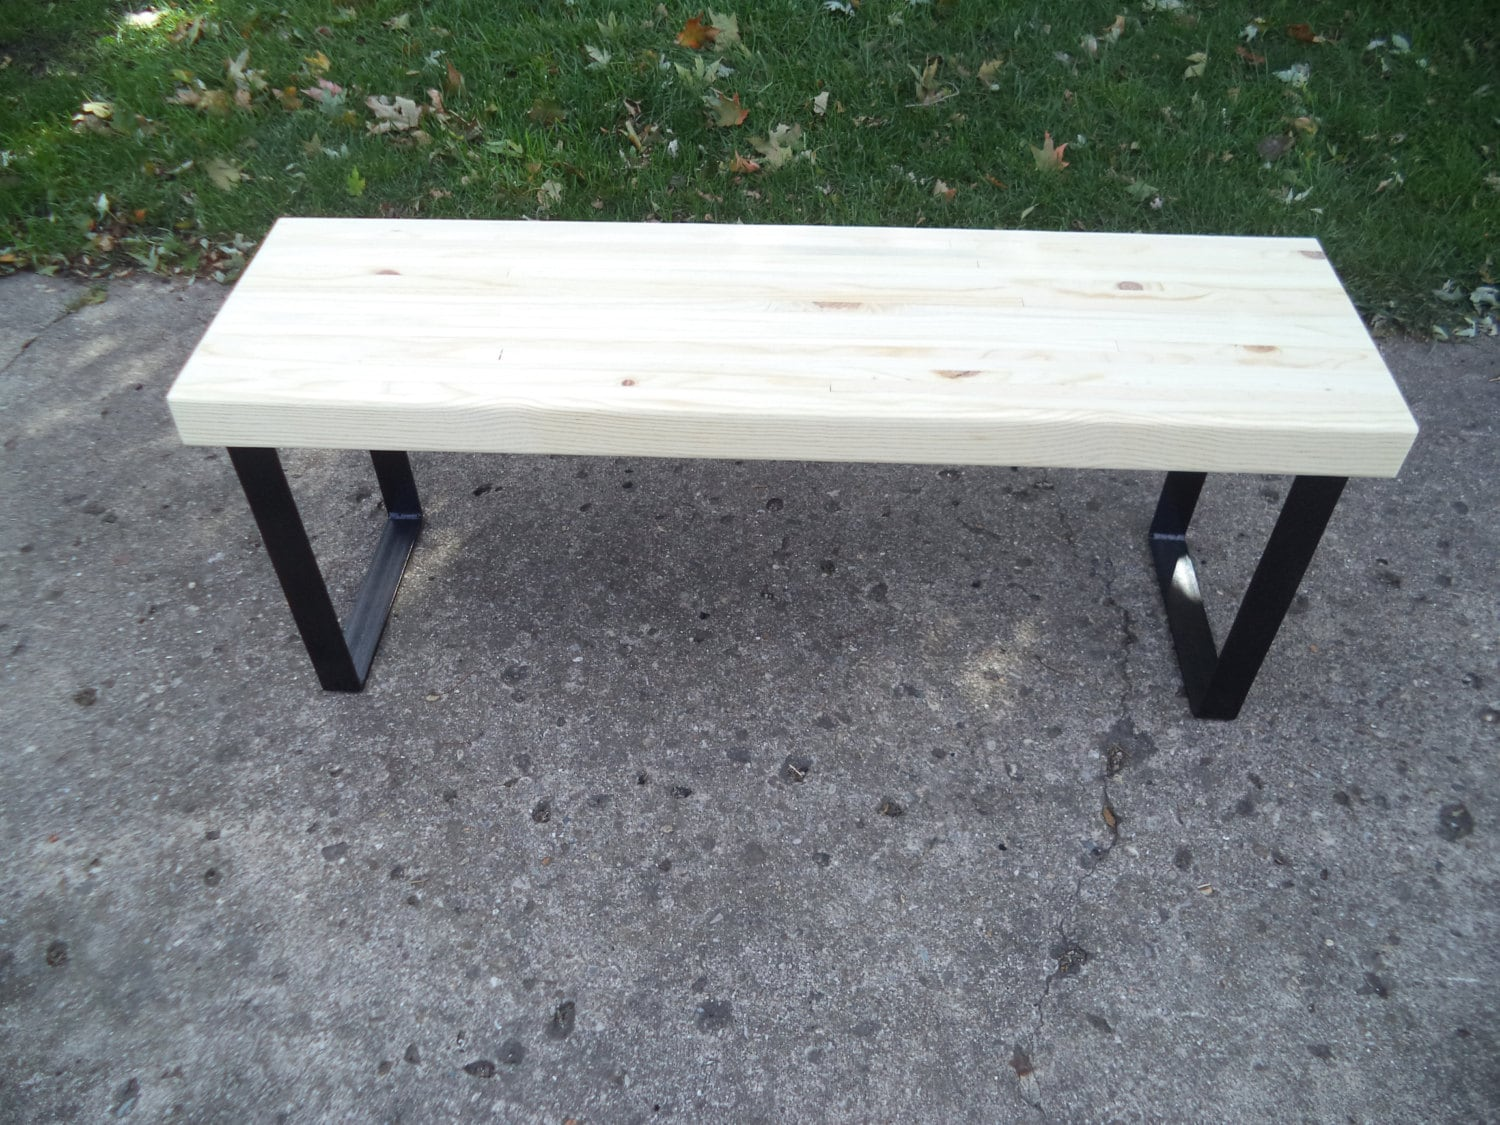 Wooden Bench Table Bench Wooden Bench Coffee Table Industrial Wood And Steel Dining Bench Furniture Metal Legs Entry Bench Hallway Bench Tv Stand